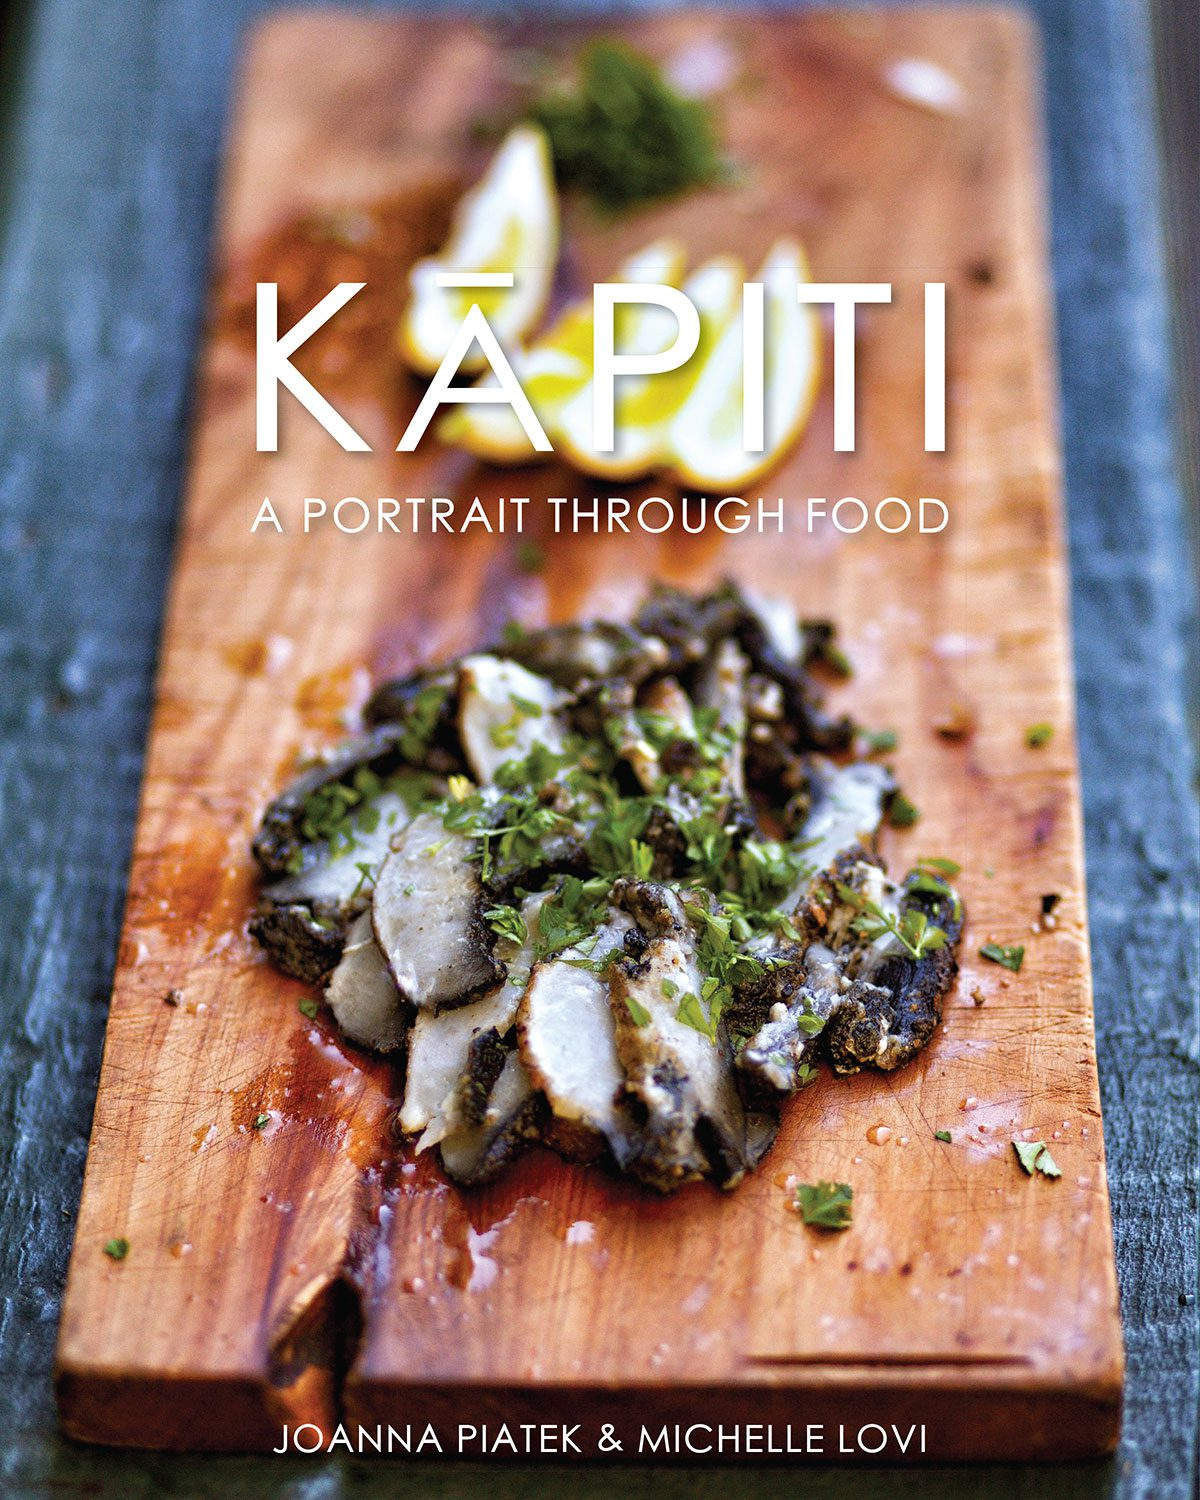 Kāpiti: A Portrait Through Food